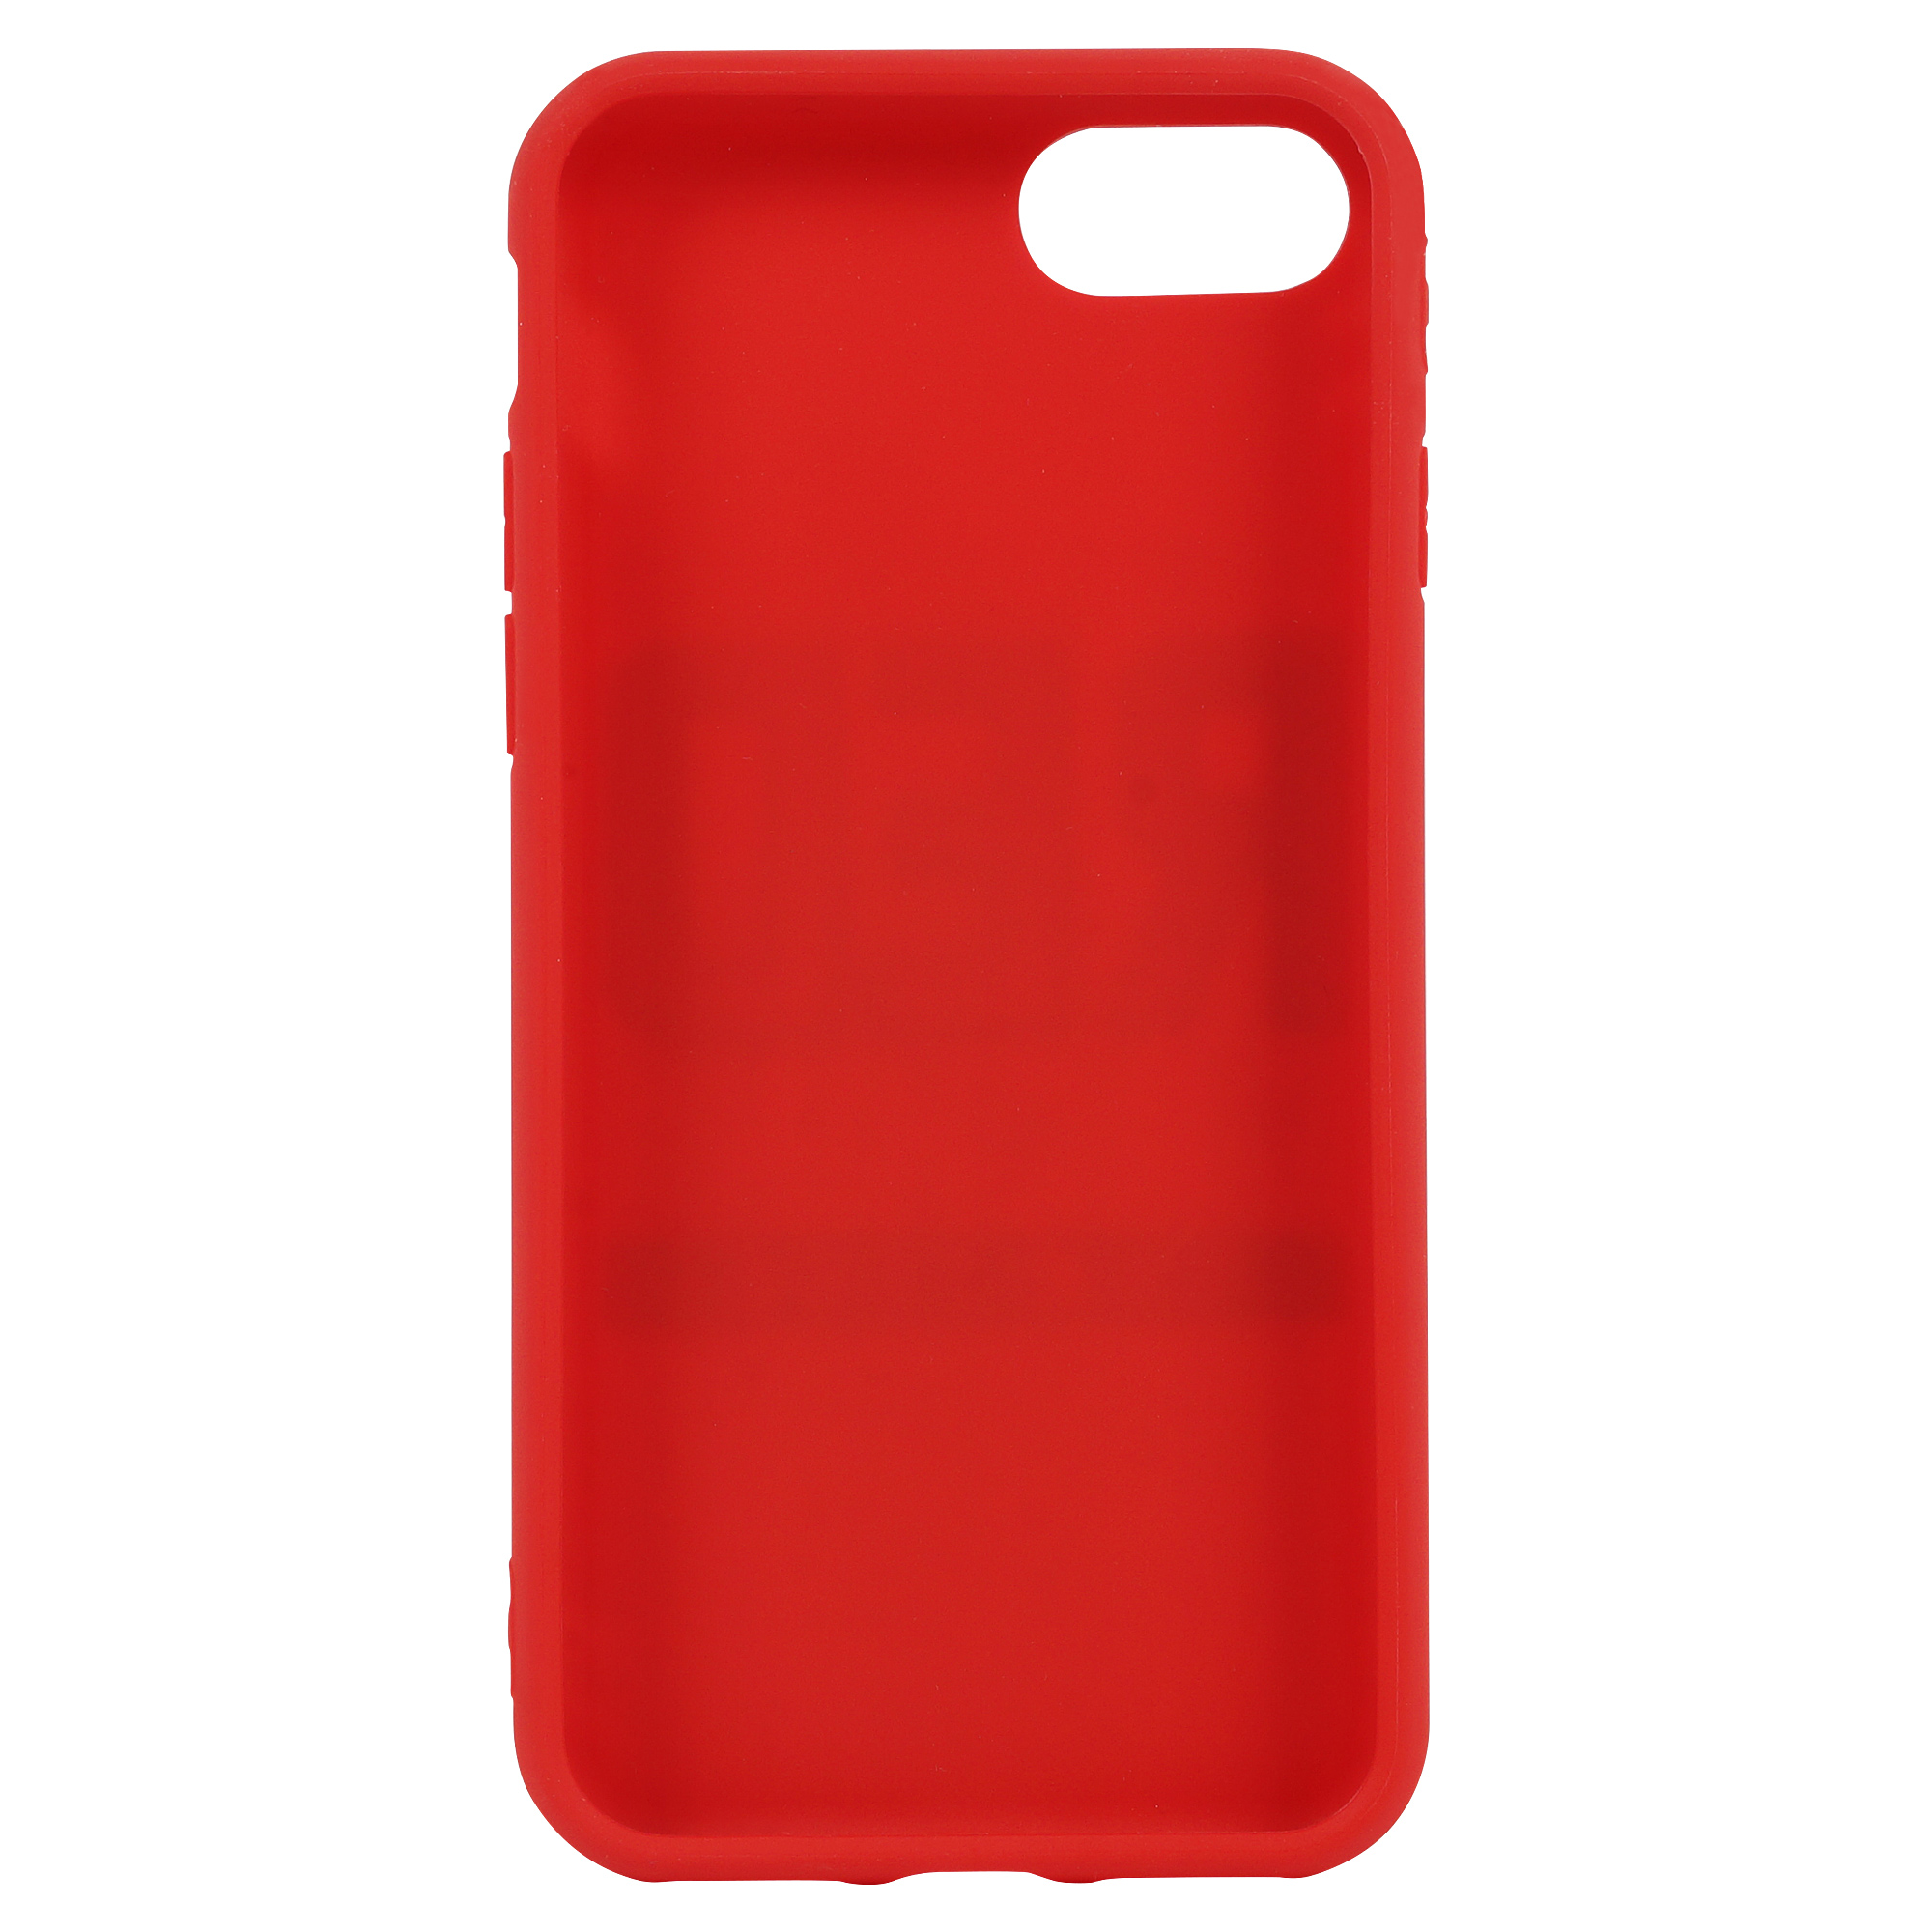 Чехол на iPhone Red Machine _7+/8+ , красный